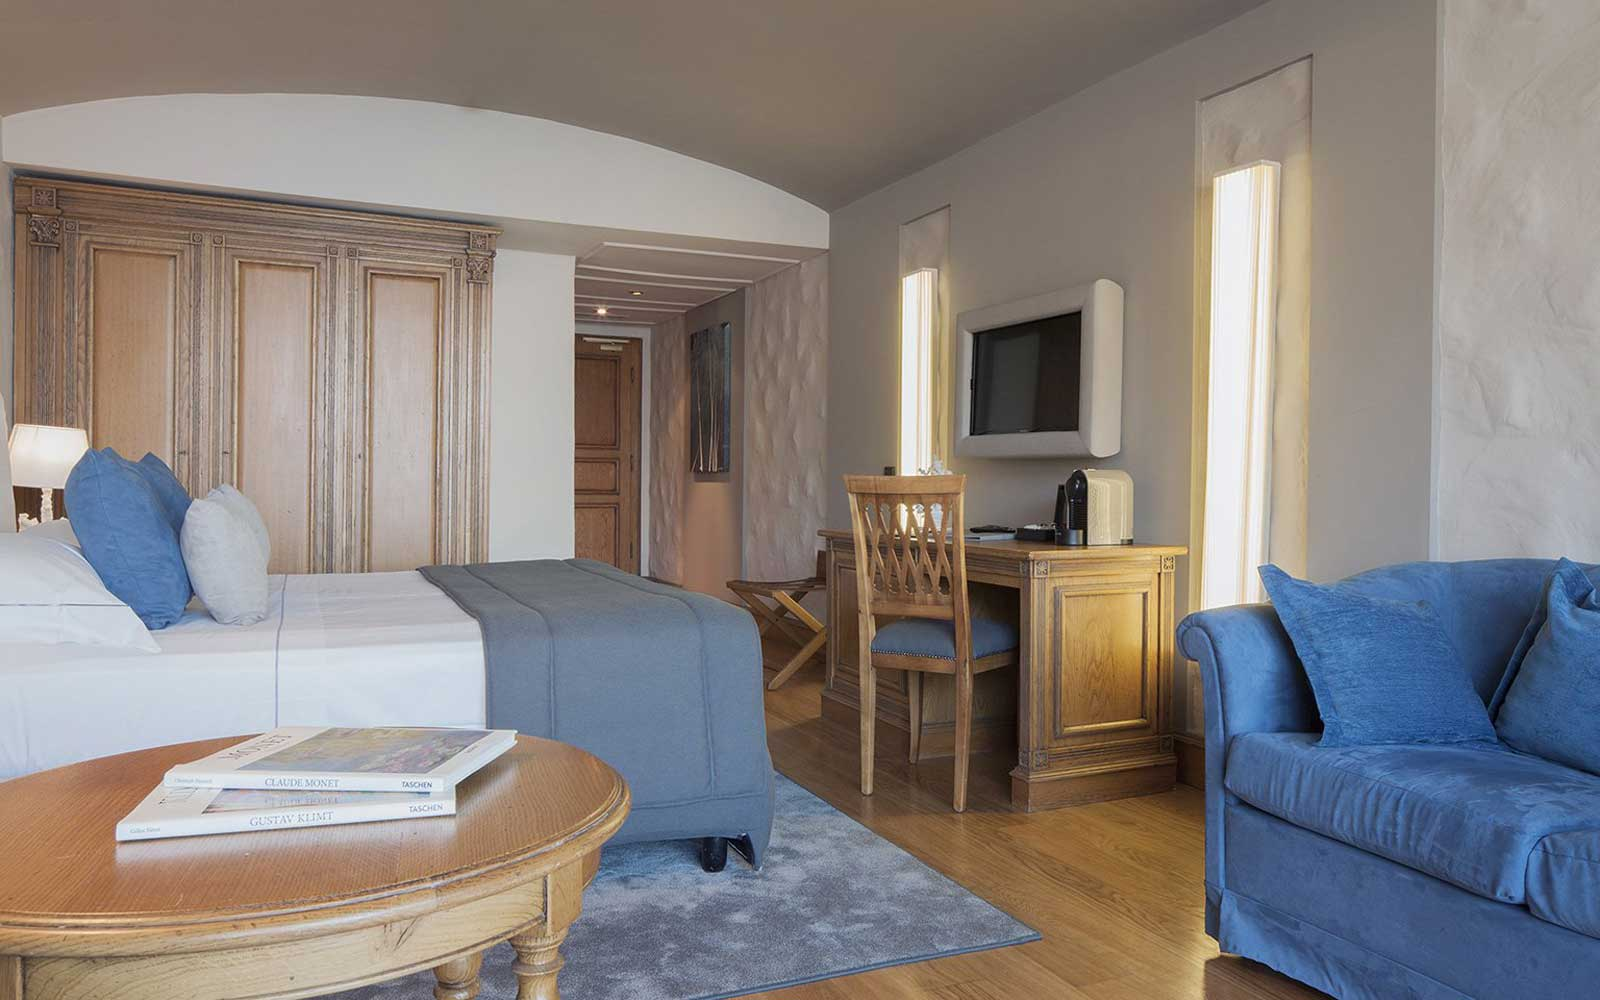 Junior Suite at Grand Hotel Mazzaro Sea Palace